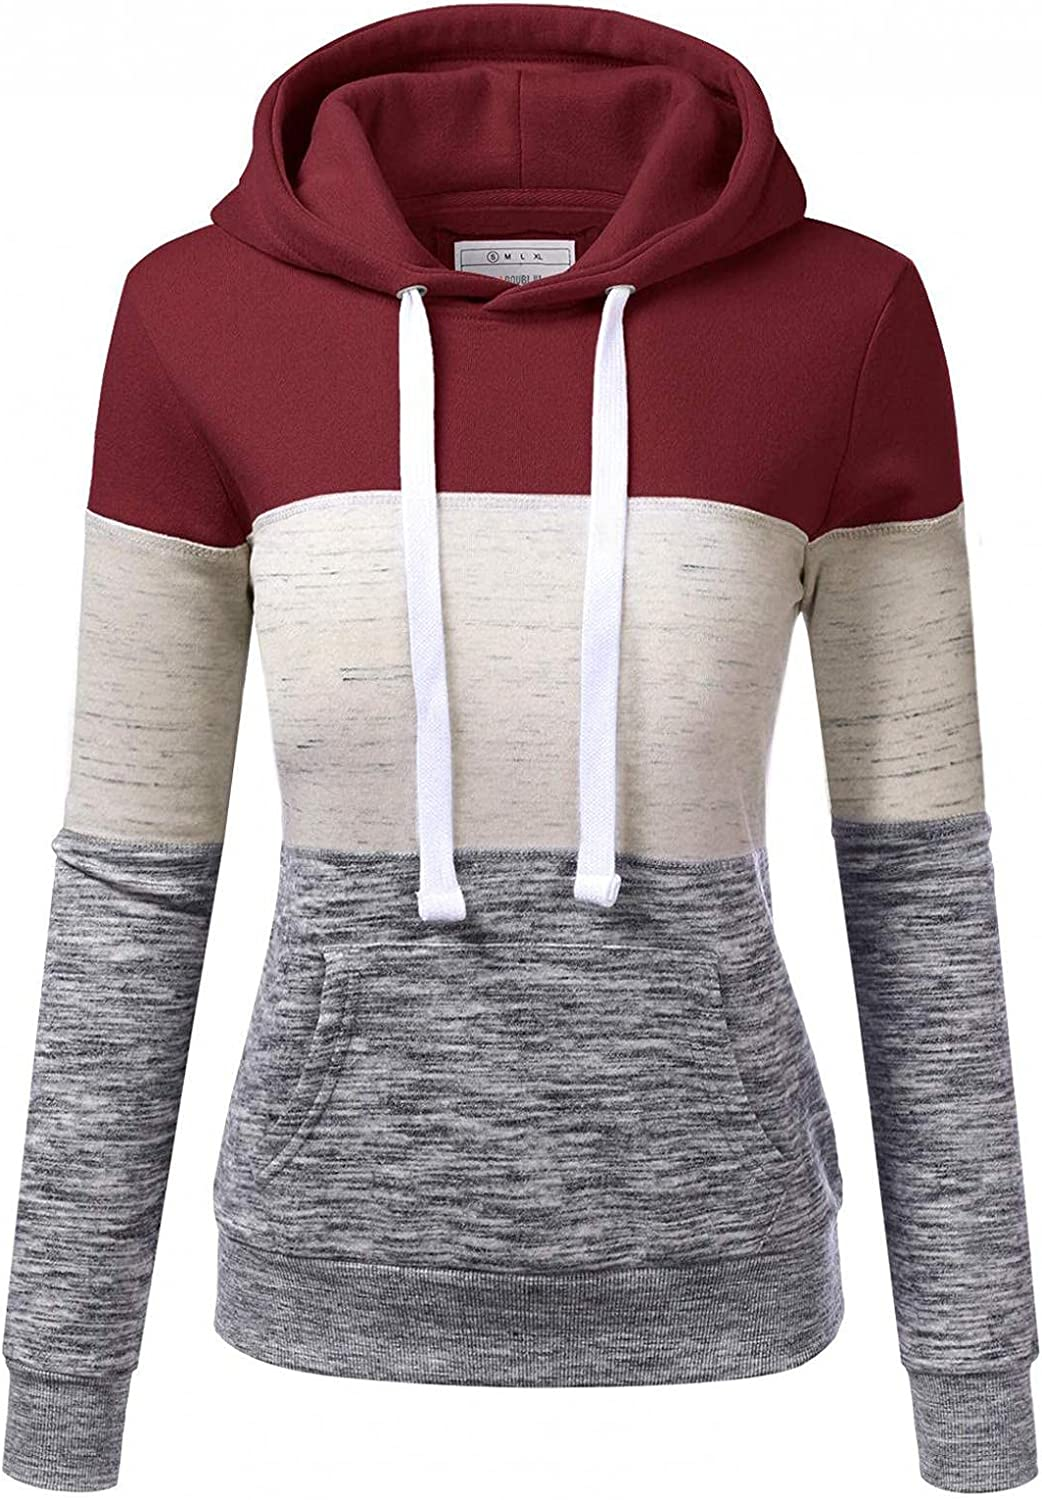 lucyouth Fall Sweatshirts for Women Casual Color Block Hoodies Tops Long Sleeve Drawstring Lightweight Pocket Pullovers